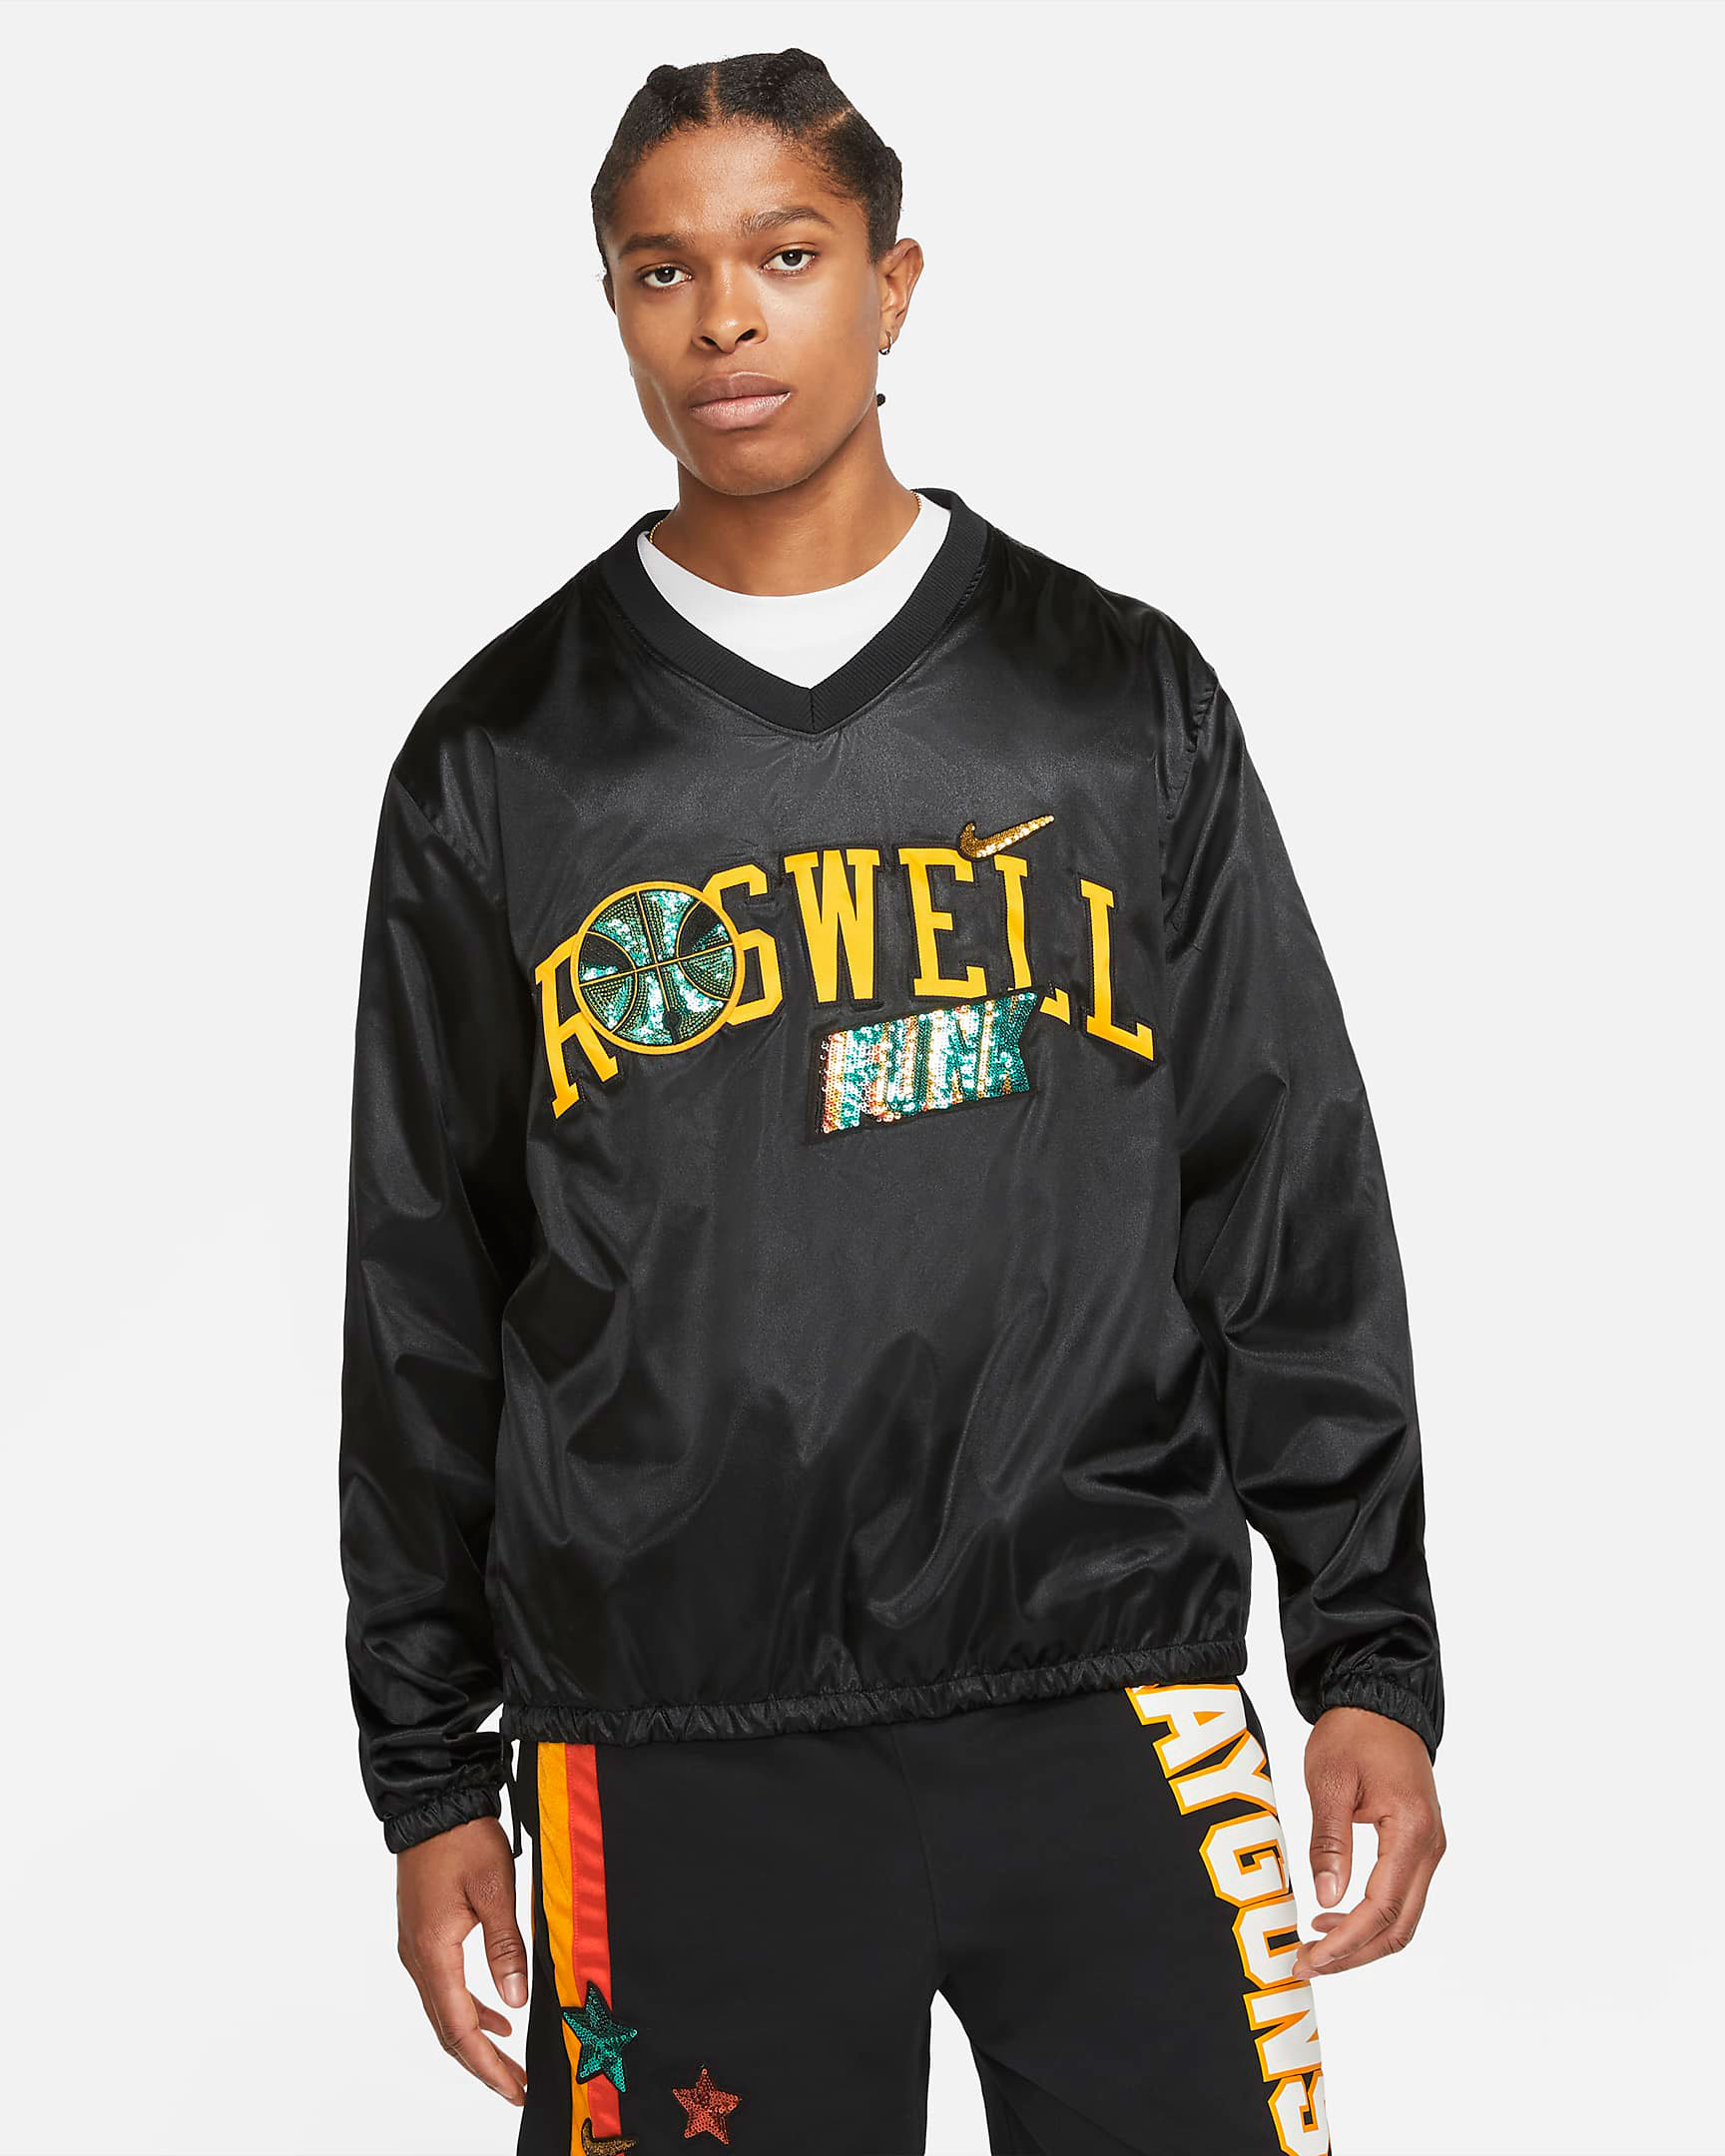 nike-roswell-rayguns-basketball-top